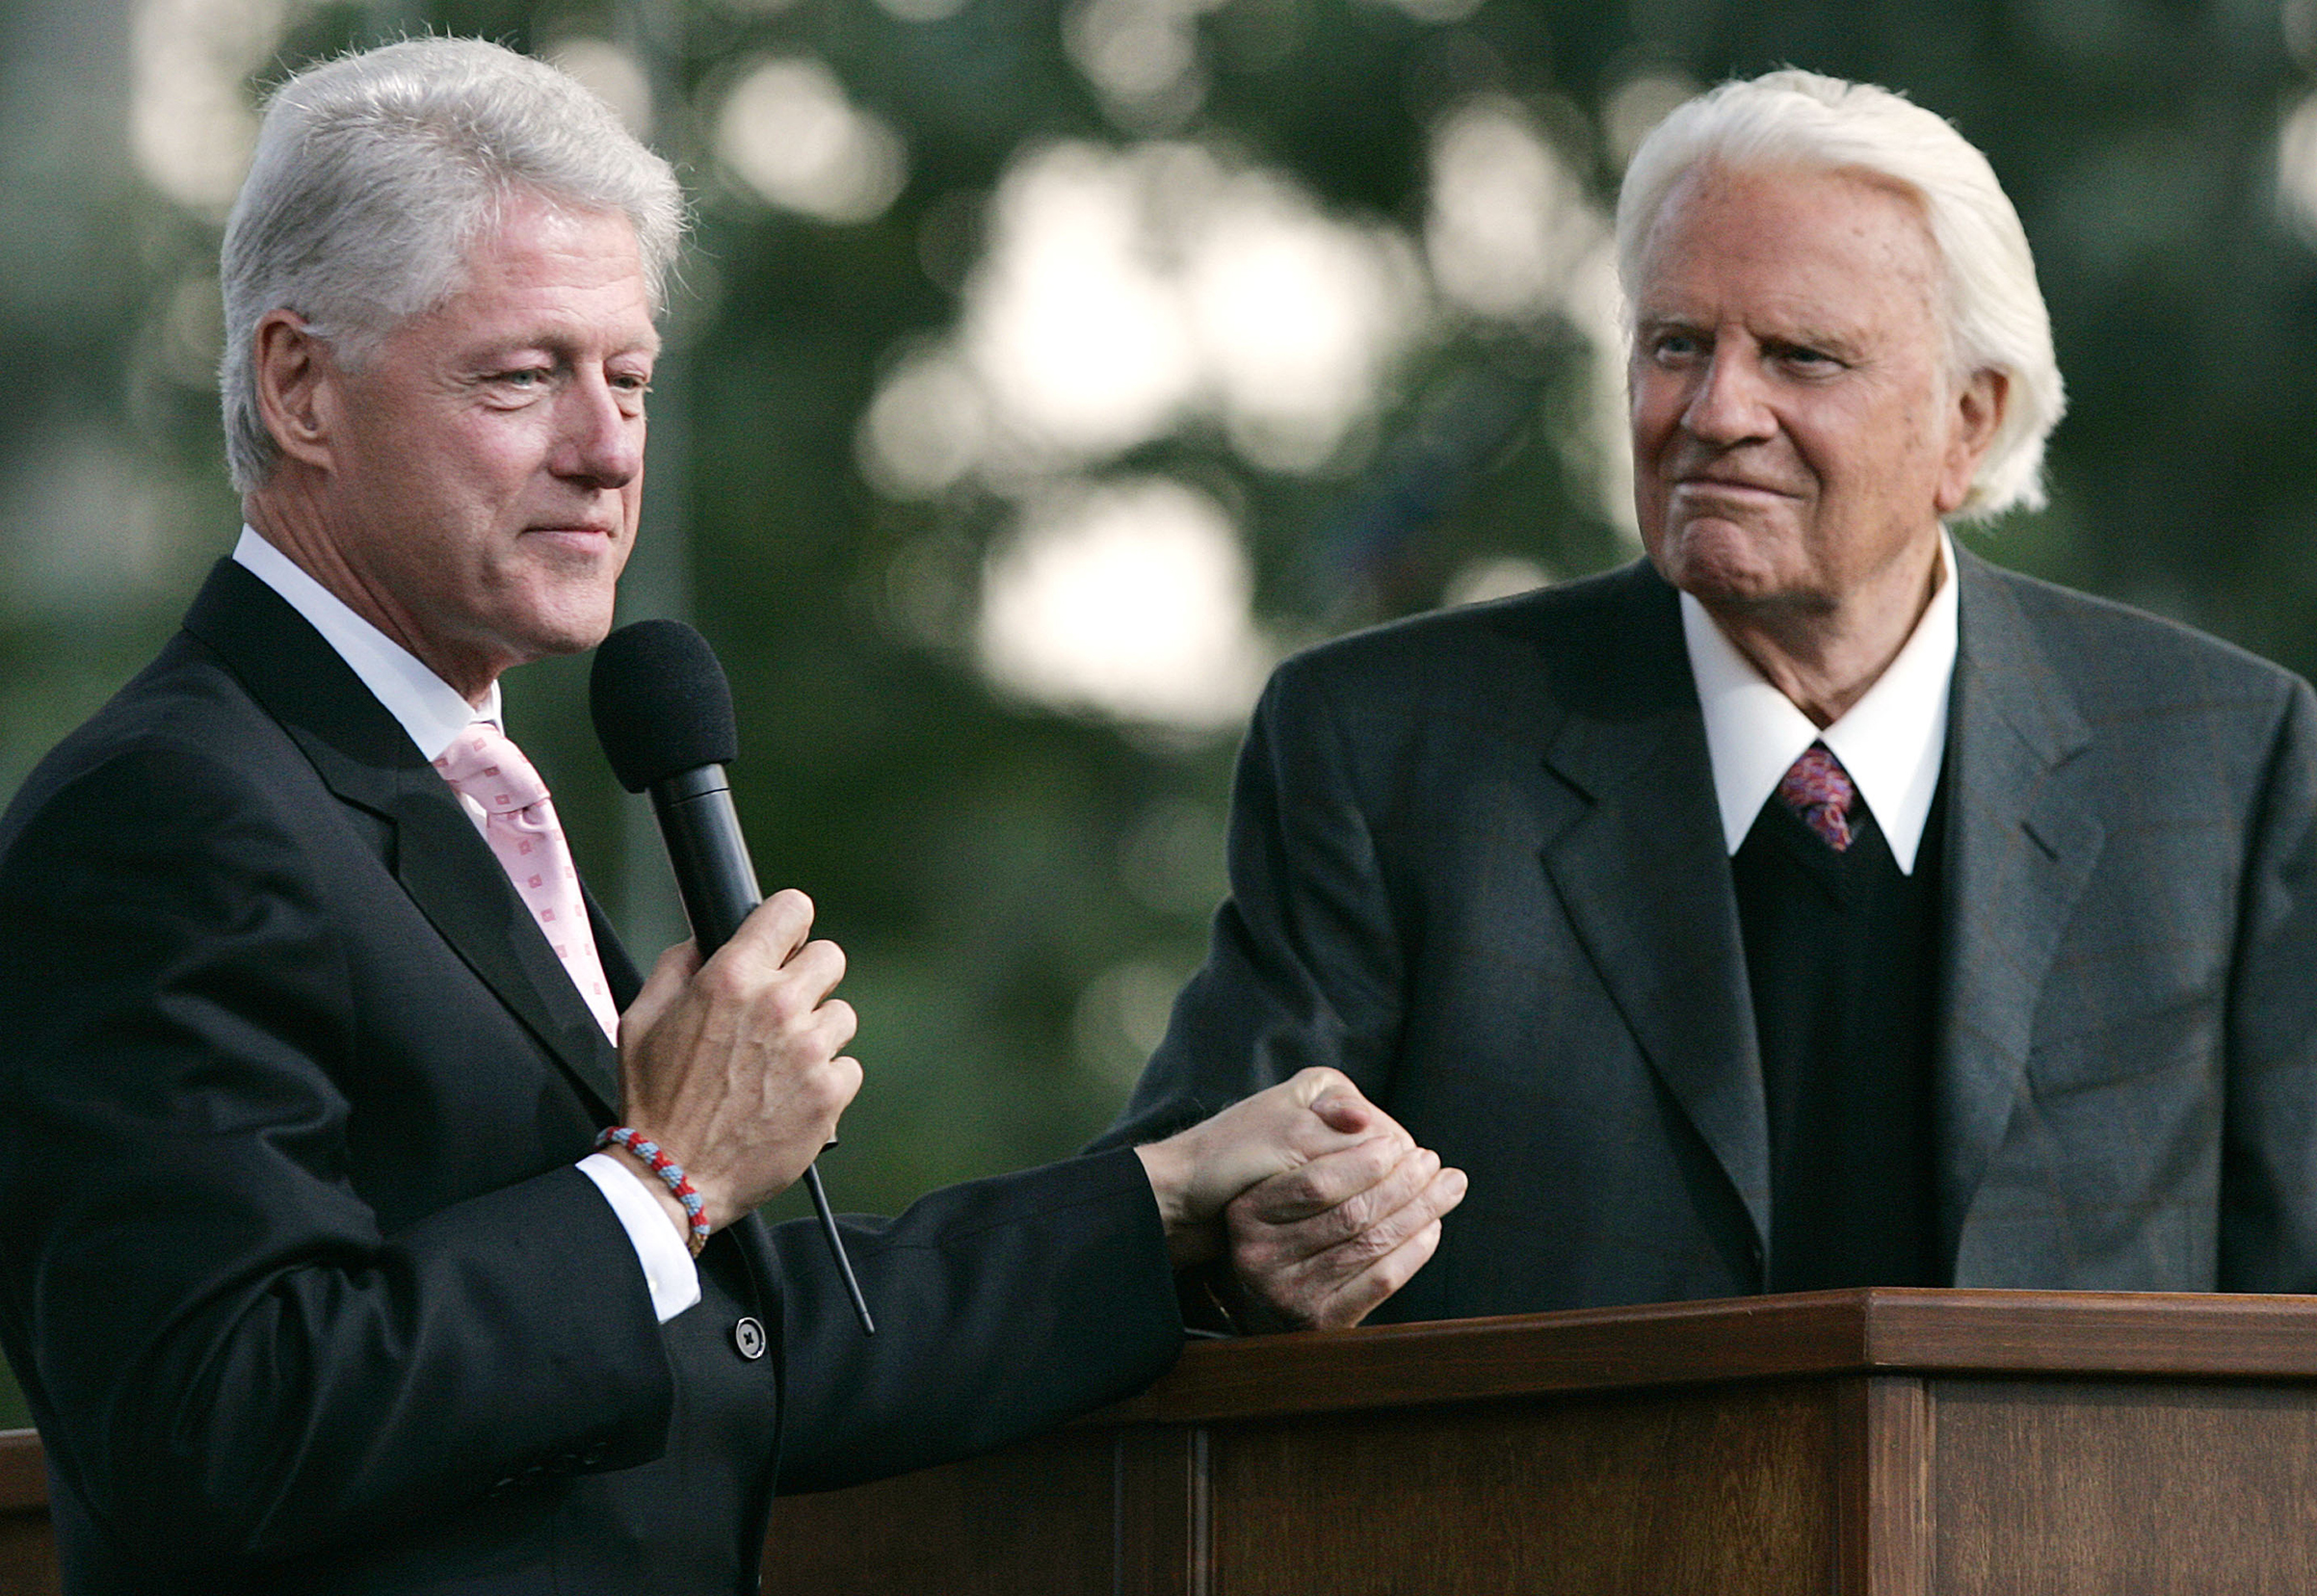 Former U.S. President Bill Clinton holds Billy Graham's hand as he speaks during Graham's Crusade at Flushing Meadows Corona Park on June 25, 2005.